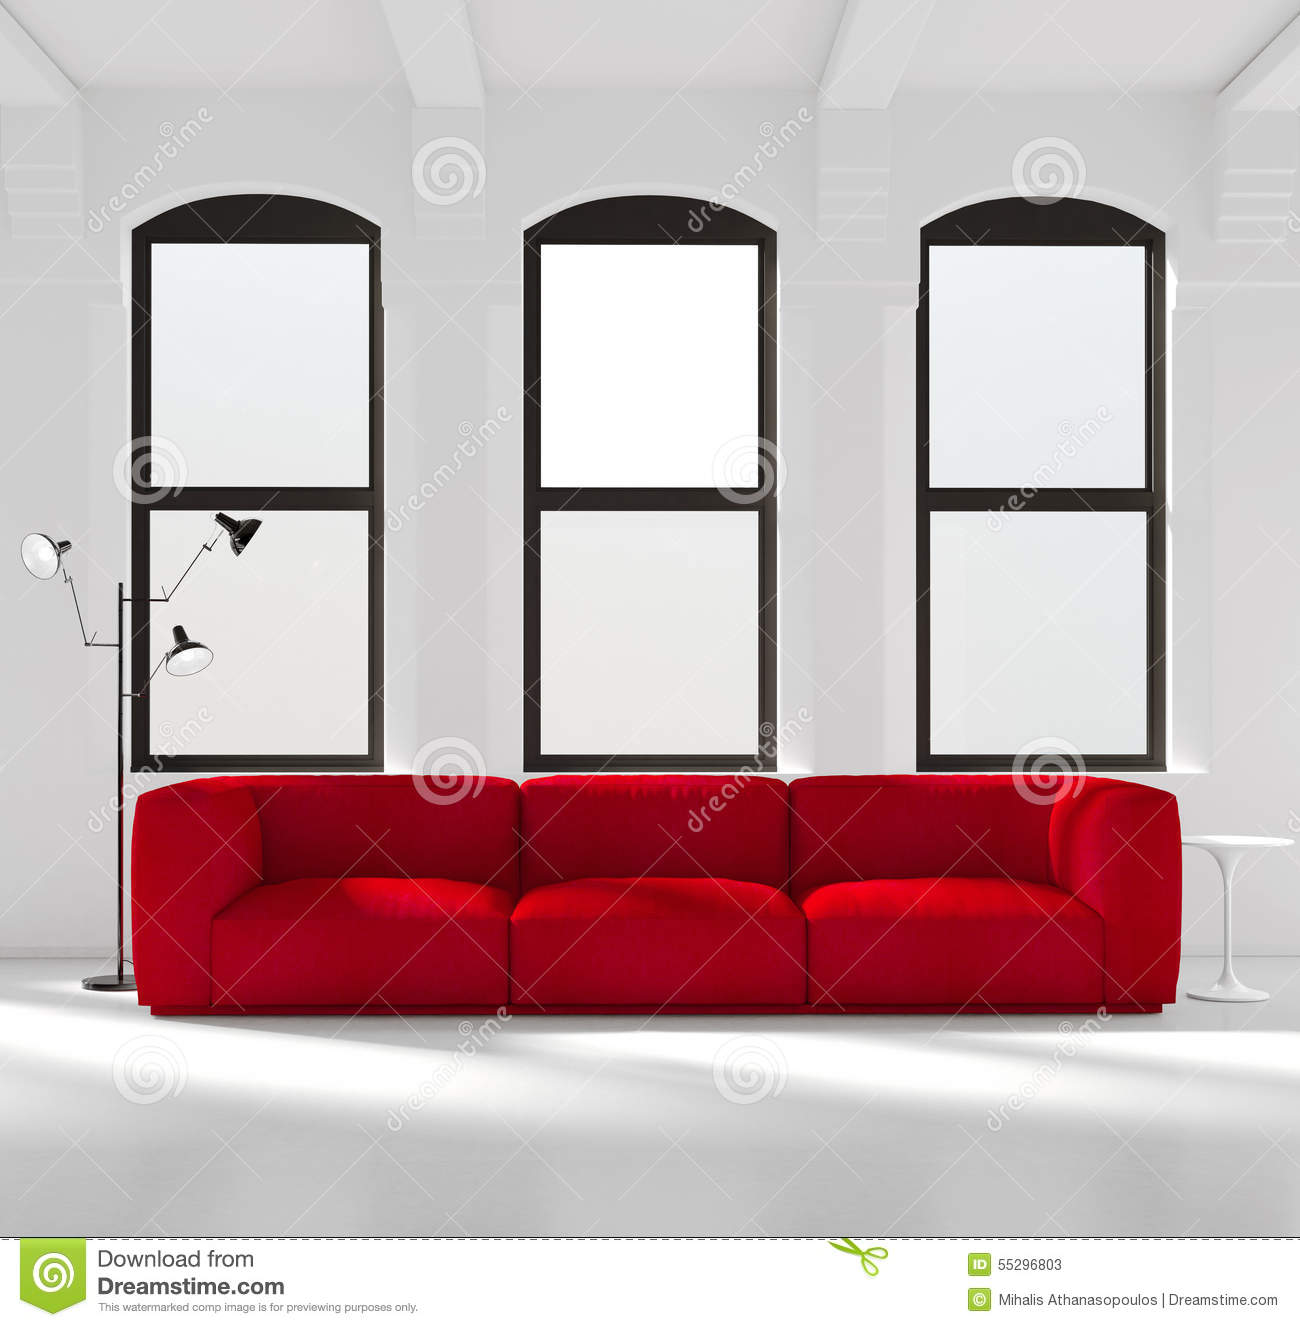 the white room with a red bed stock photos - image: 30939143